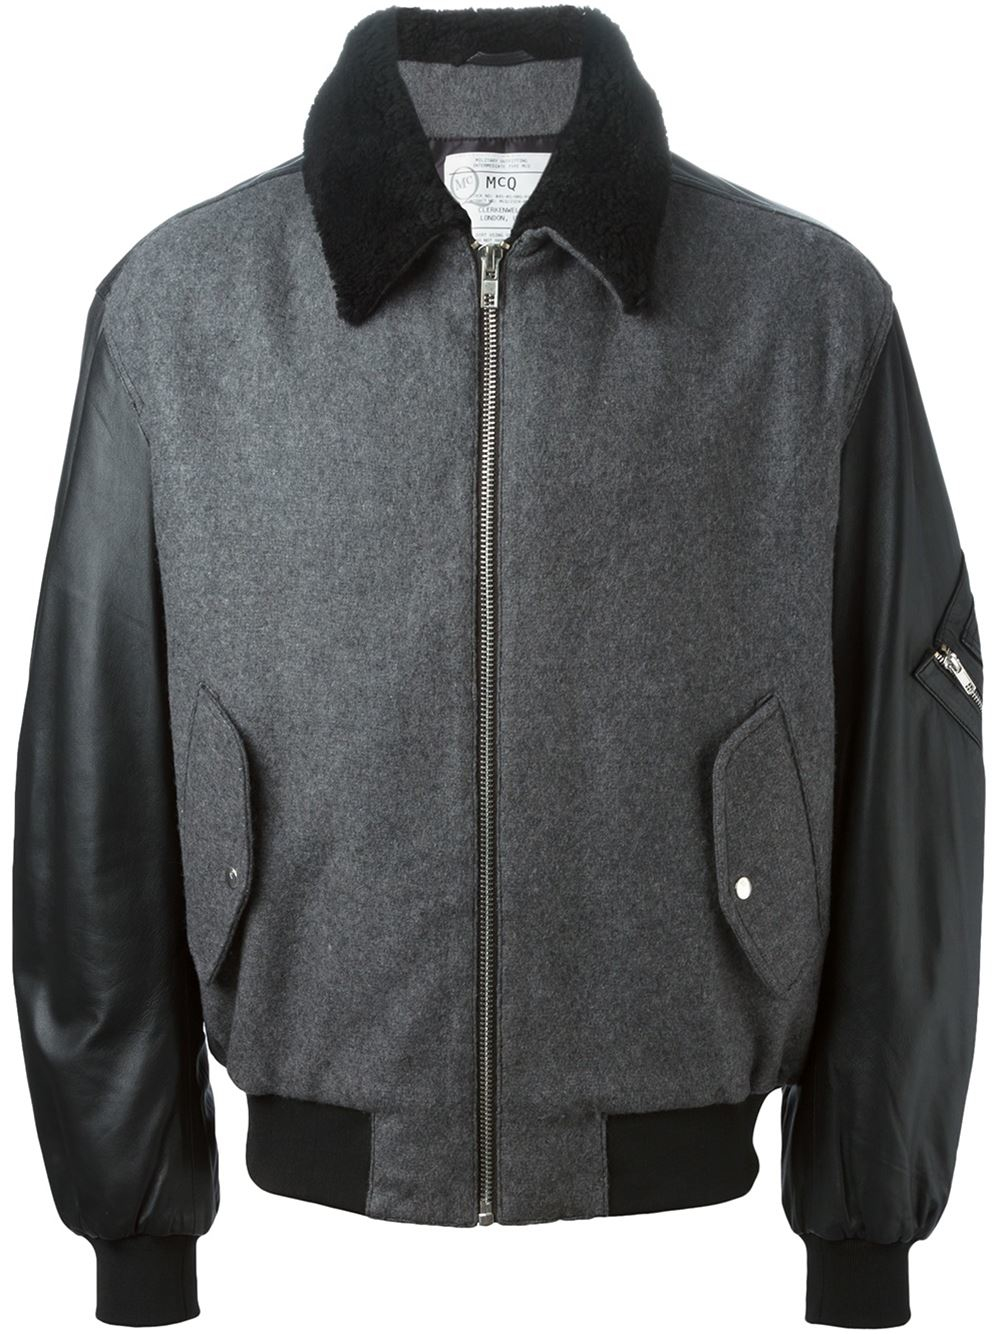 Leather Skin Men Denim Gray Grey Jacket with Black Leather Sleeves Description: Kindly find some of the top features of our products as under. We design the jacket with high attention to its details. With great attention, we make sure every part of the jacket is perfect from stitching to the deep lining.